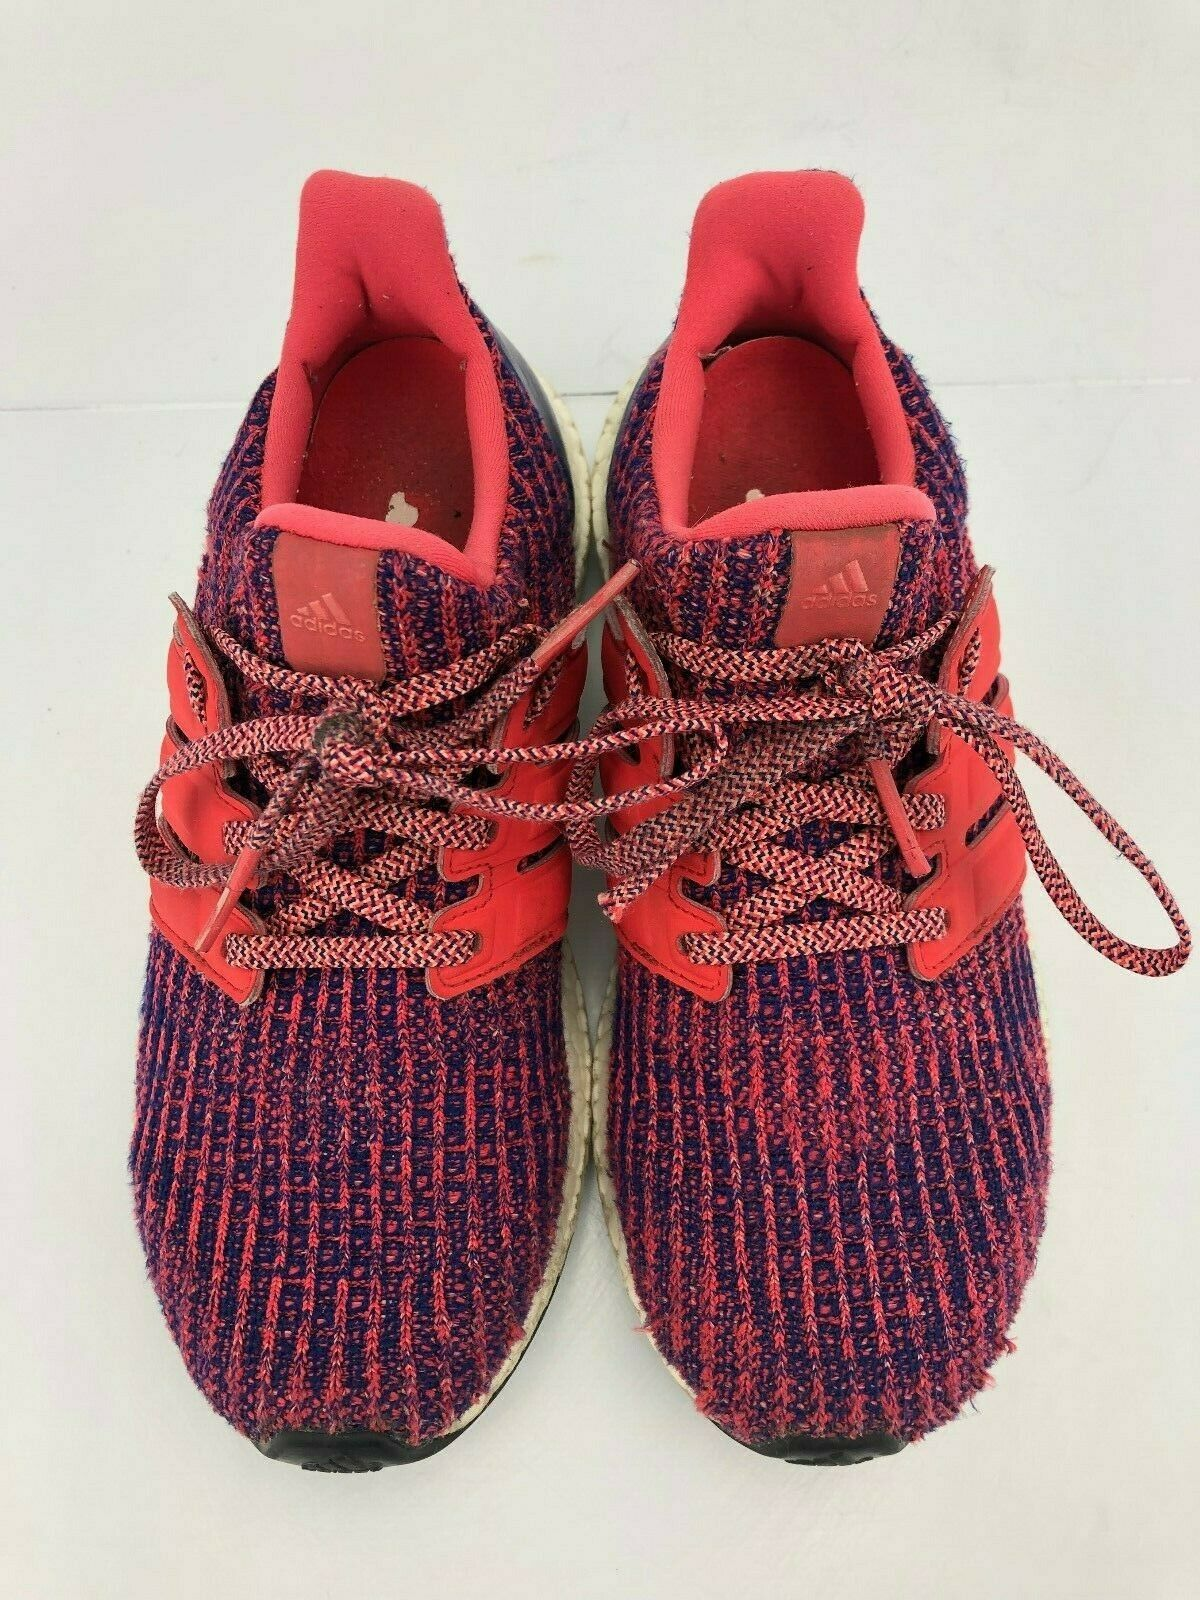 Adidas Ultra Boost Chaussures De Course Tennis multicolerouge Training Training Training Baskets Femme 7 a02cf1